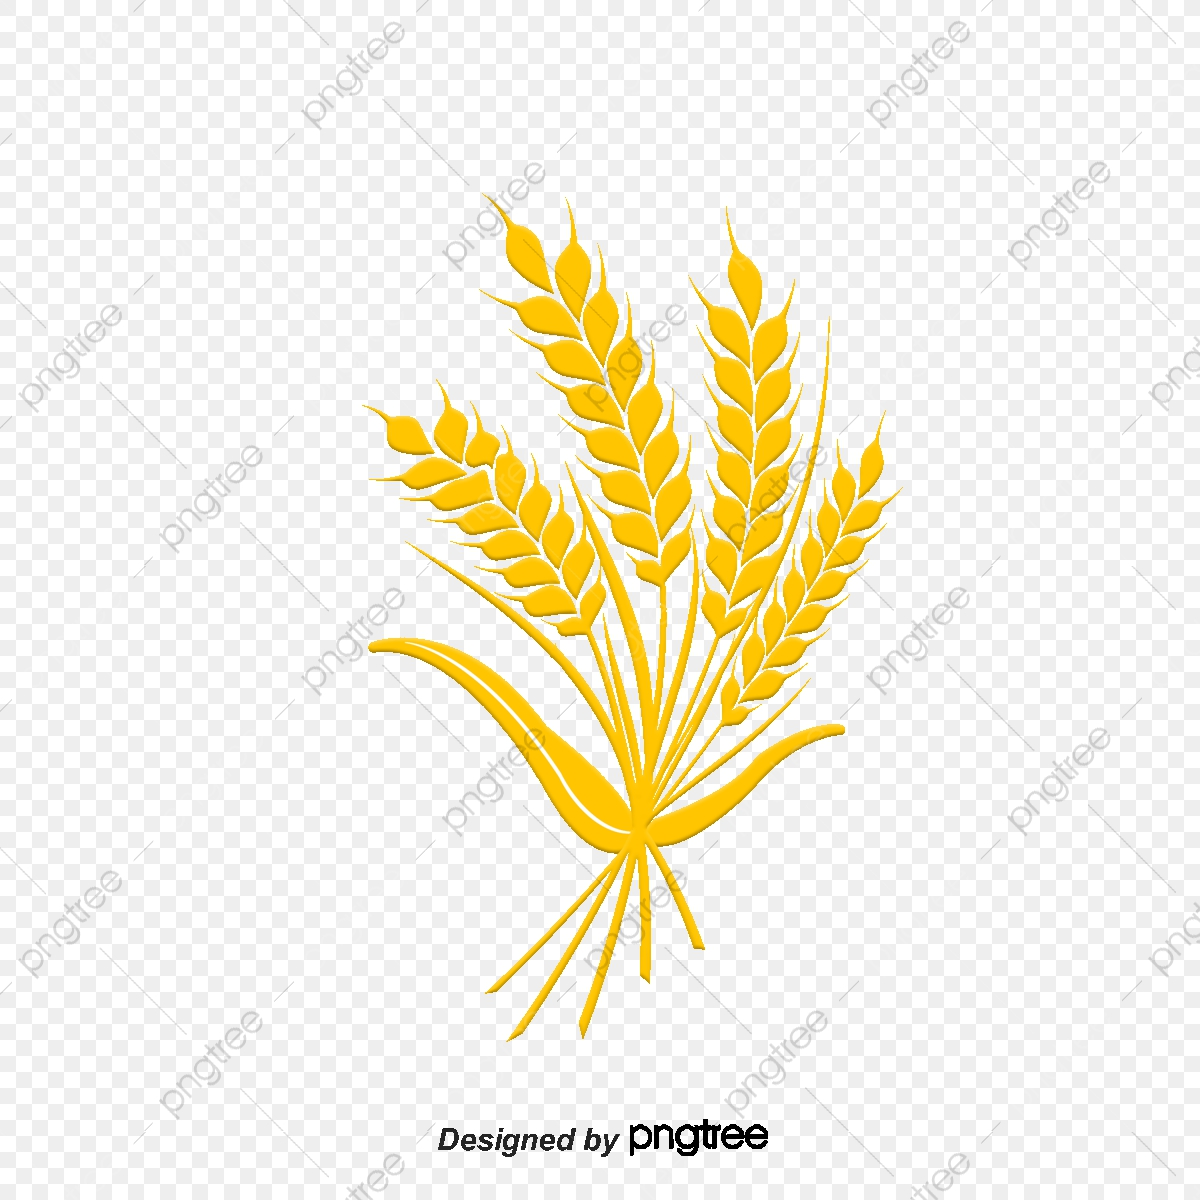 Cartoon Wheat Wheat Chinese Herbal Chinese Wind Herbs Png And